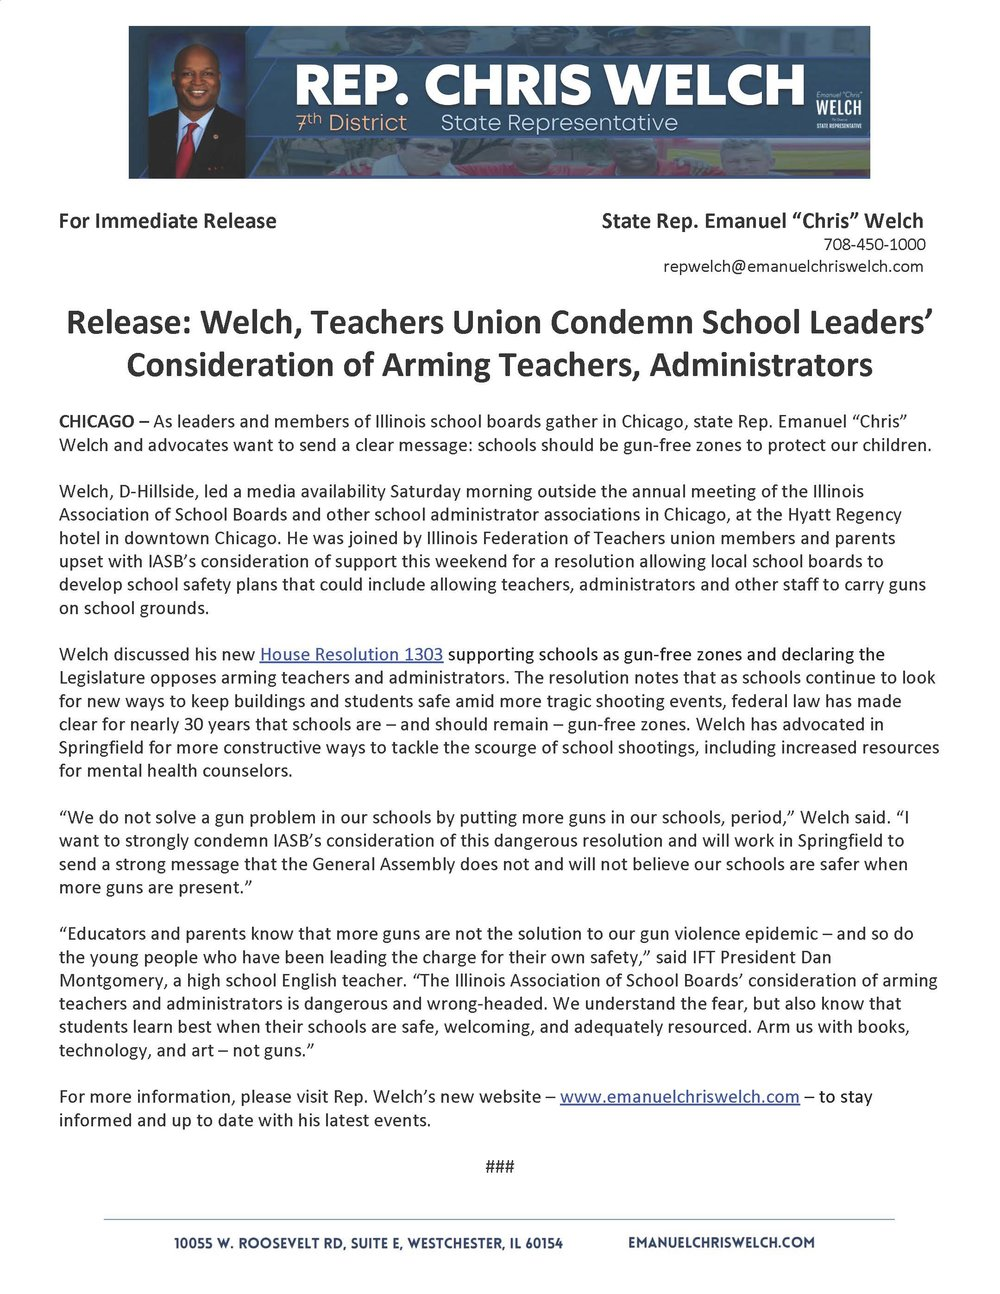 Welch, Teachers Union Condemn School Leaders' Consideration of Arming Teachers, Administrators  (November 17, 2018)